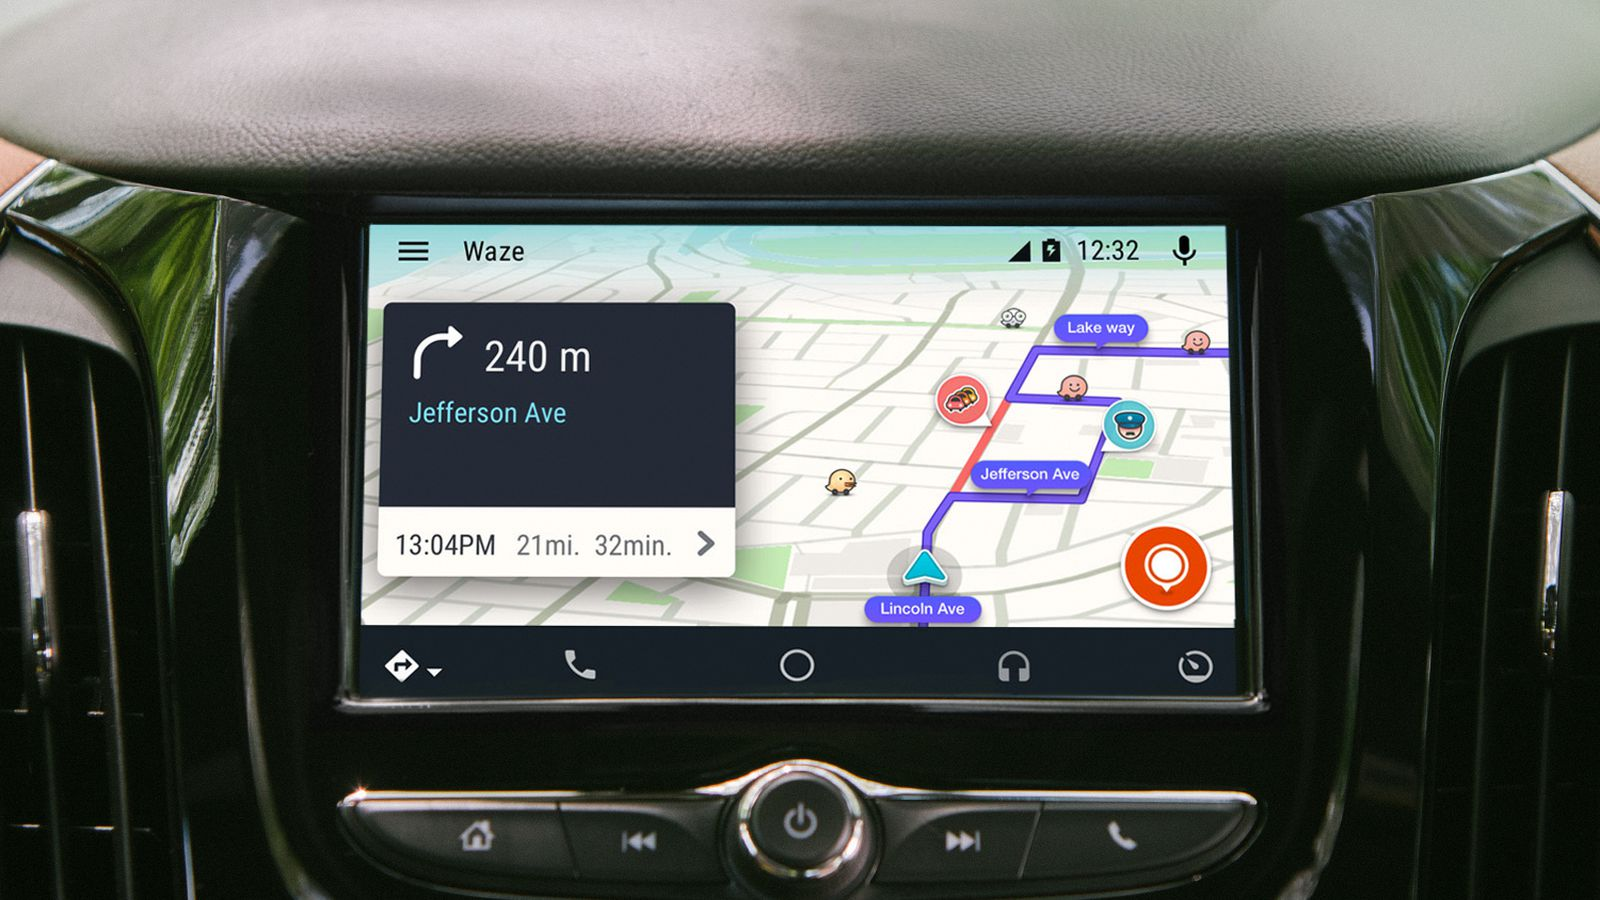 Waze Arrives On Android Auto The Verge